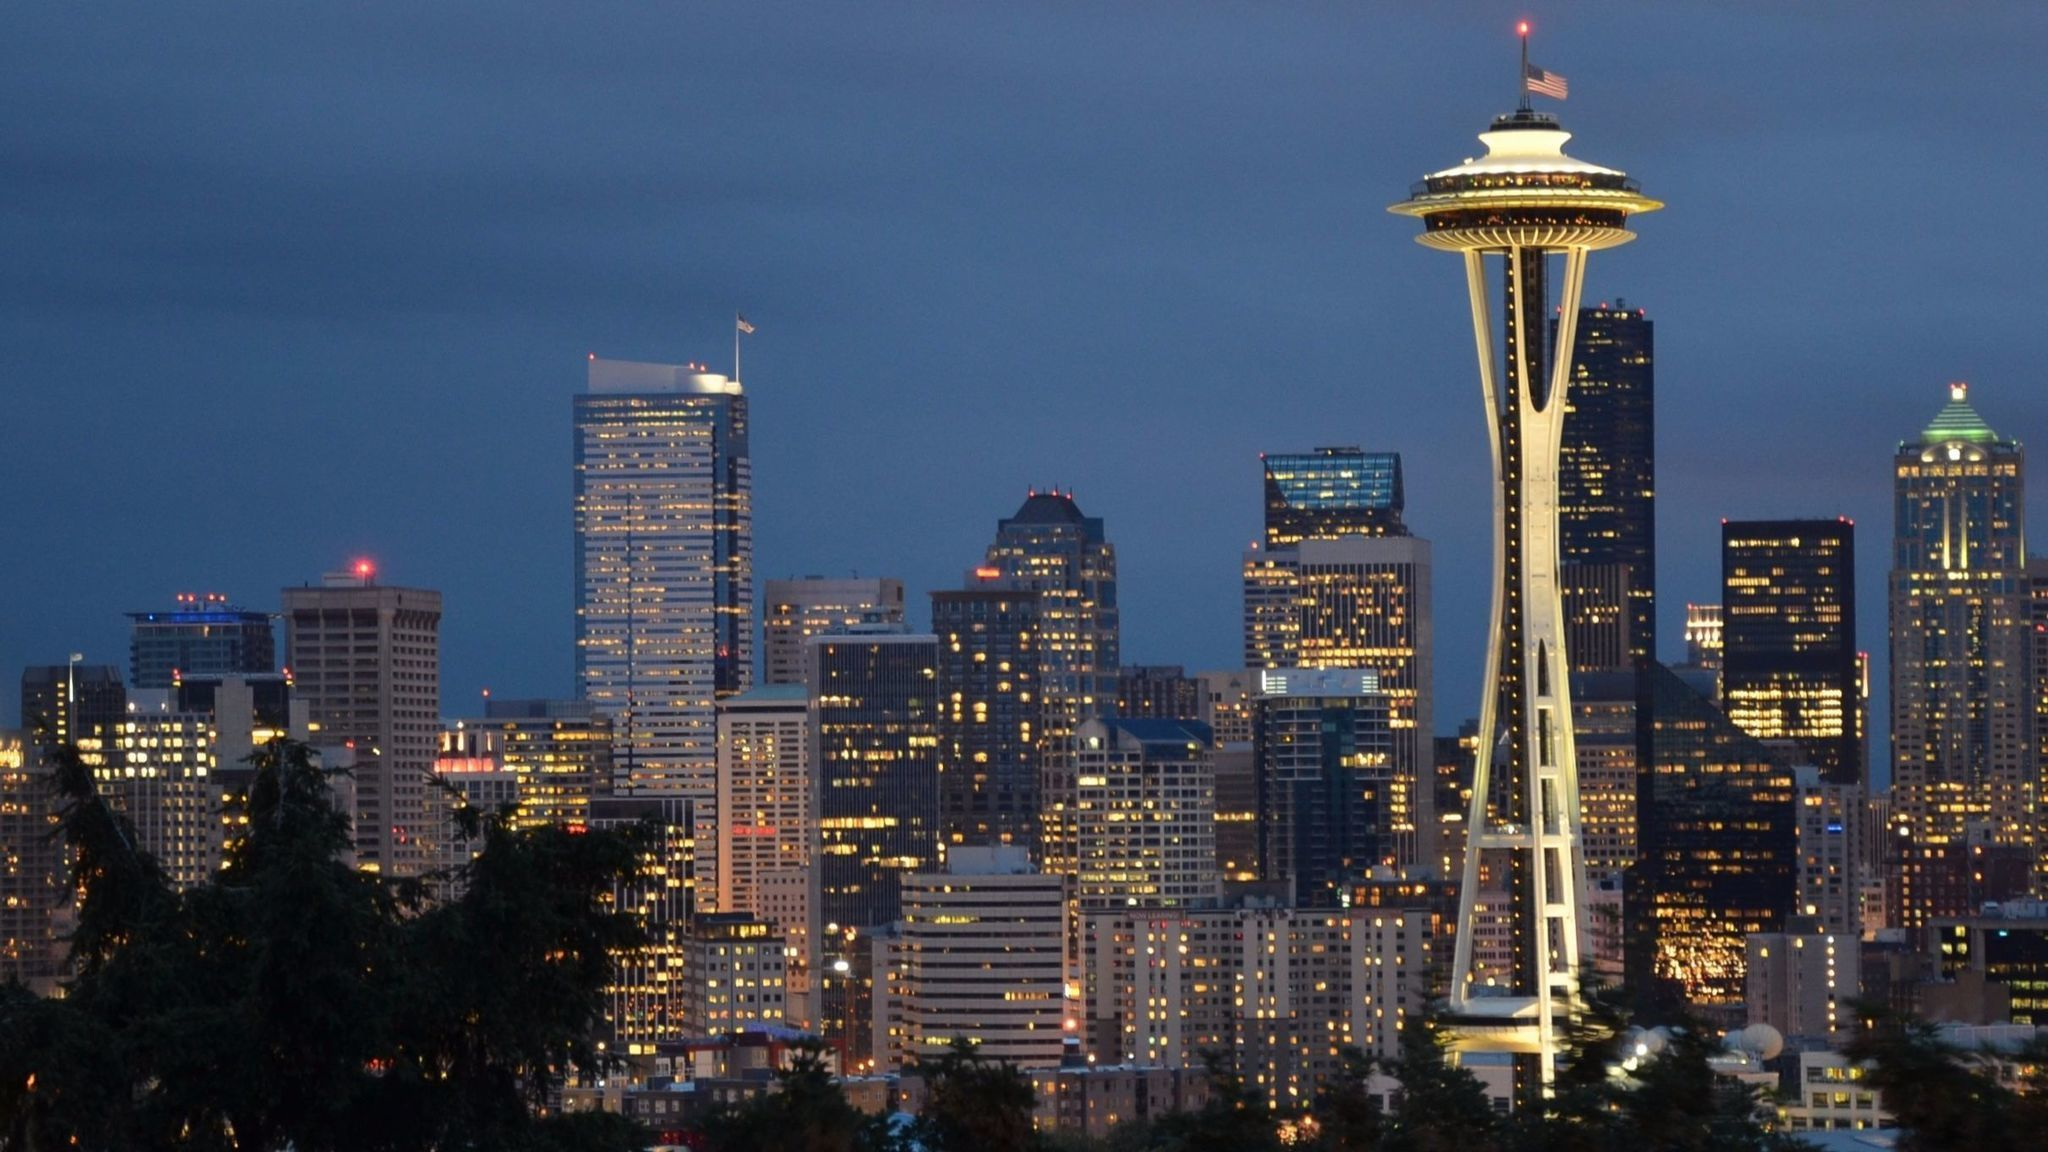 Seattle's Space Needle is centerpiece to the skyline view from Kerry Park on Queen Anne Hill. Seattle will be a popular place to go for Memorial Day weekend.